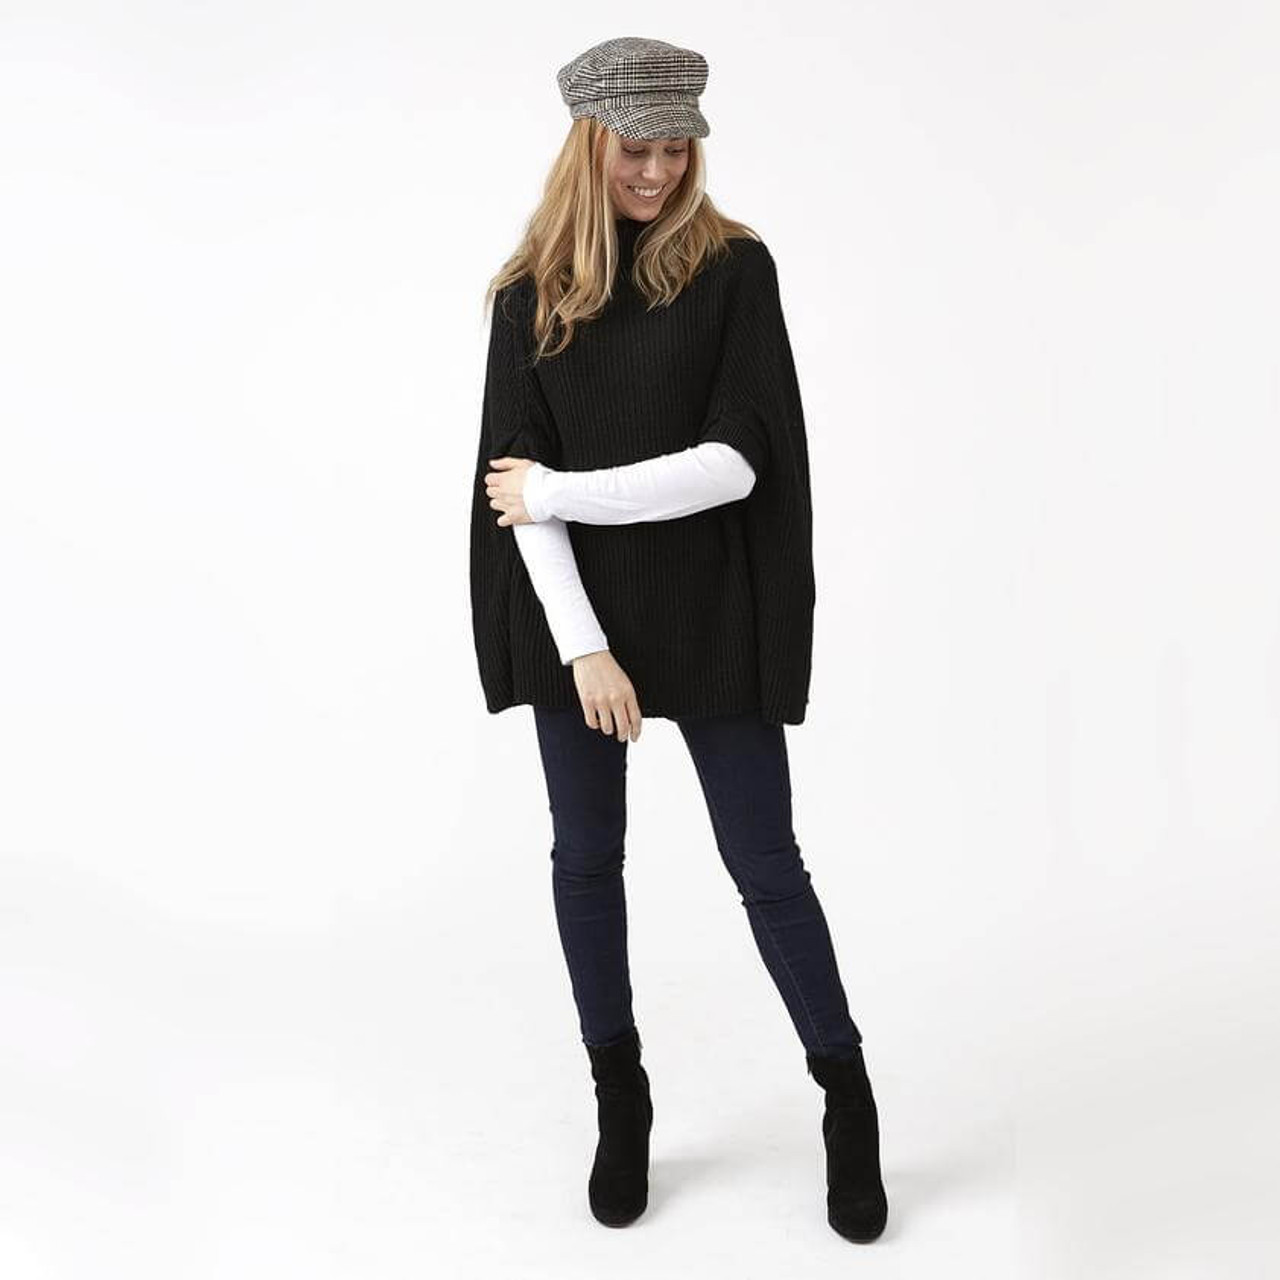 This modern knit black Victoria sweater poncho is perfect for the office, a day of shopping, or even date night. The neutral color and effortless style will have you looking chic and feeling warm wherever you go. One size fits most.